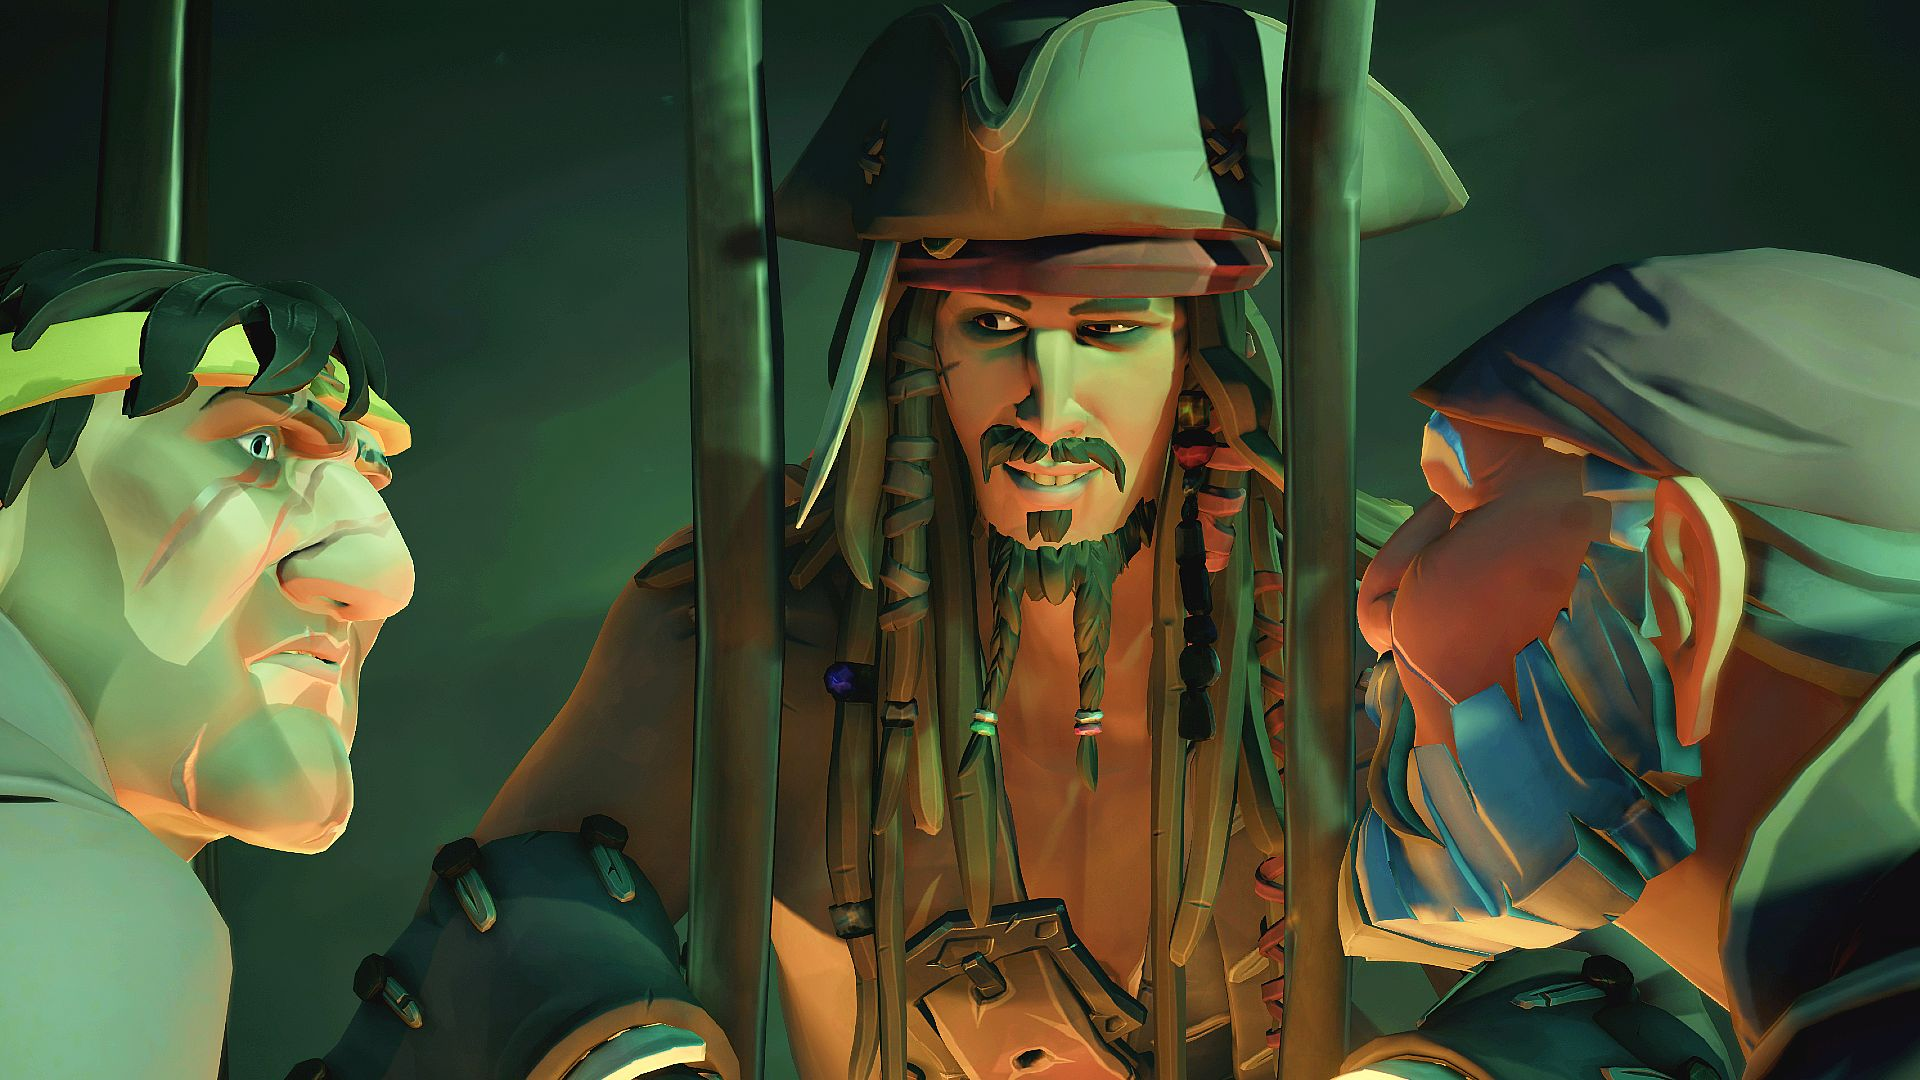 Sea of Thieves: A Pirate's Life is more than a Pirates of the Caribbean crossover